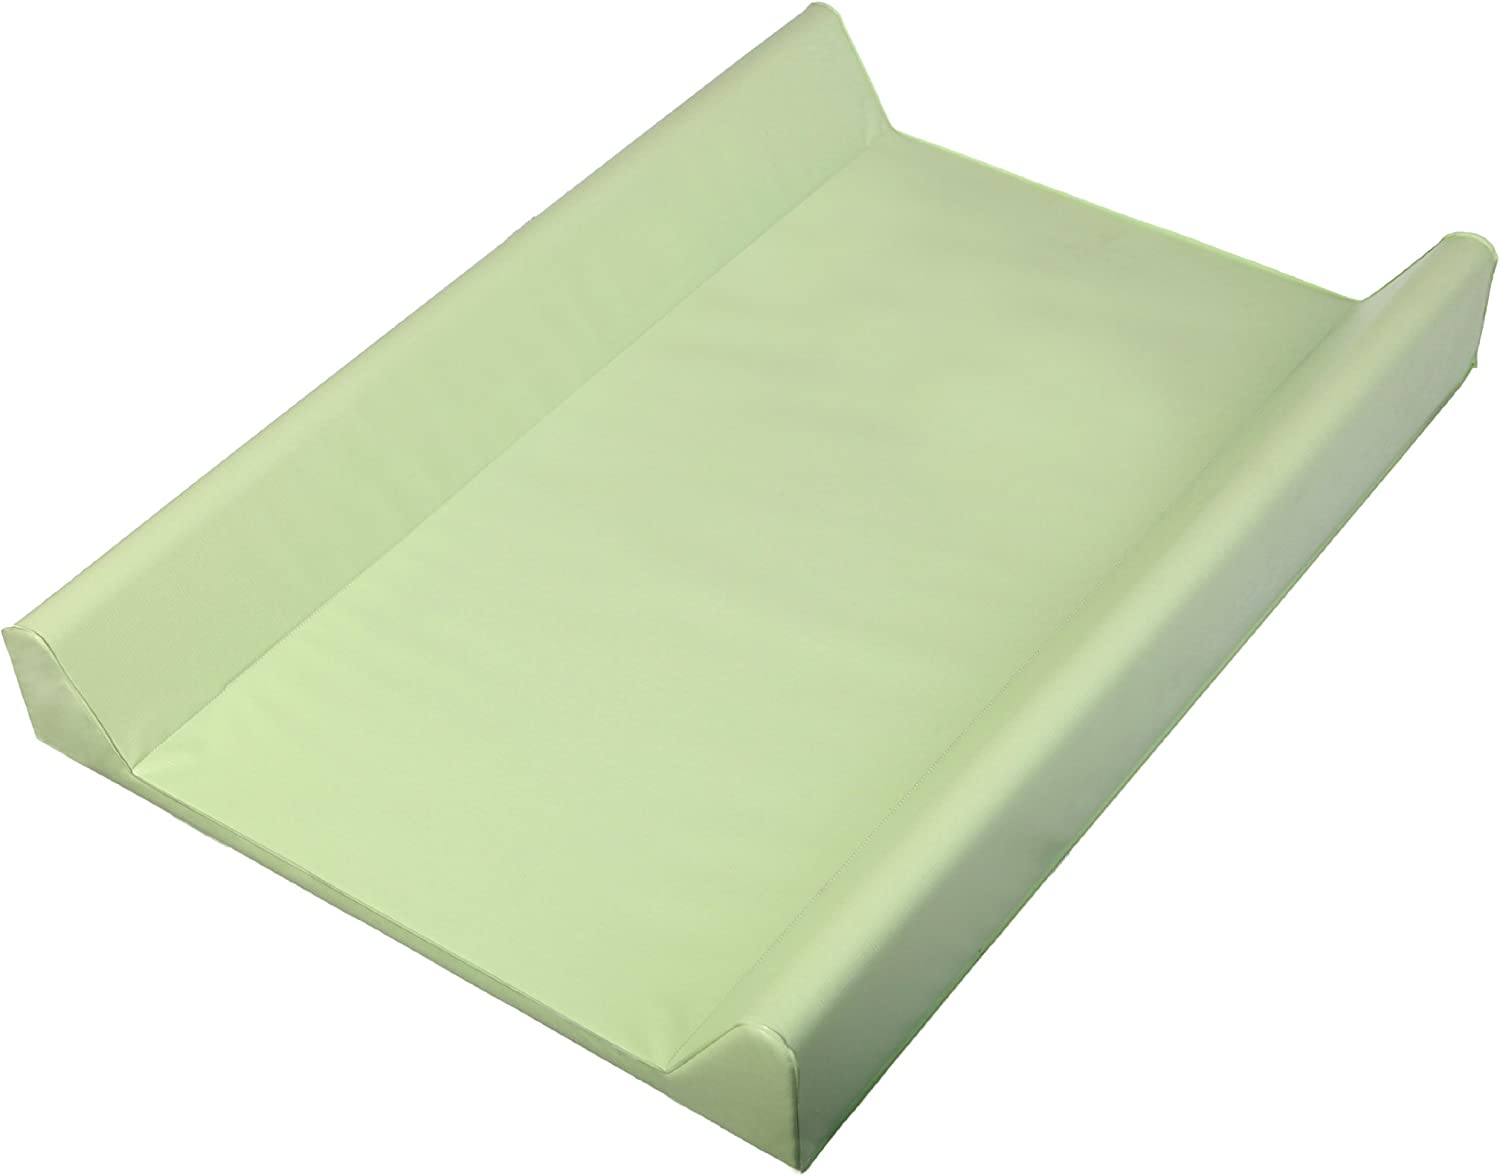 Changing Mat with hard base Changing Cover PVC Changing Table Top Green Changing Mat 70x50 cm Changing Pad Cotbed Changing Pad Cot Bet Changign Mat